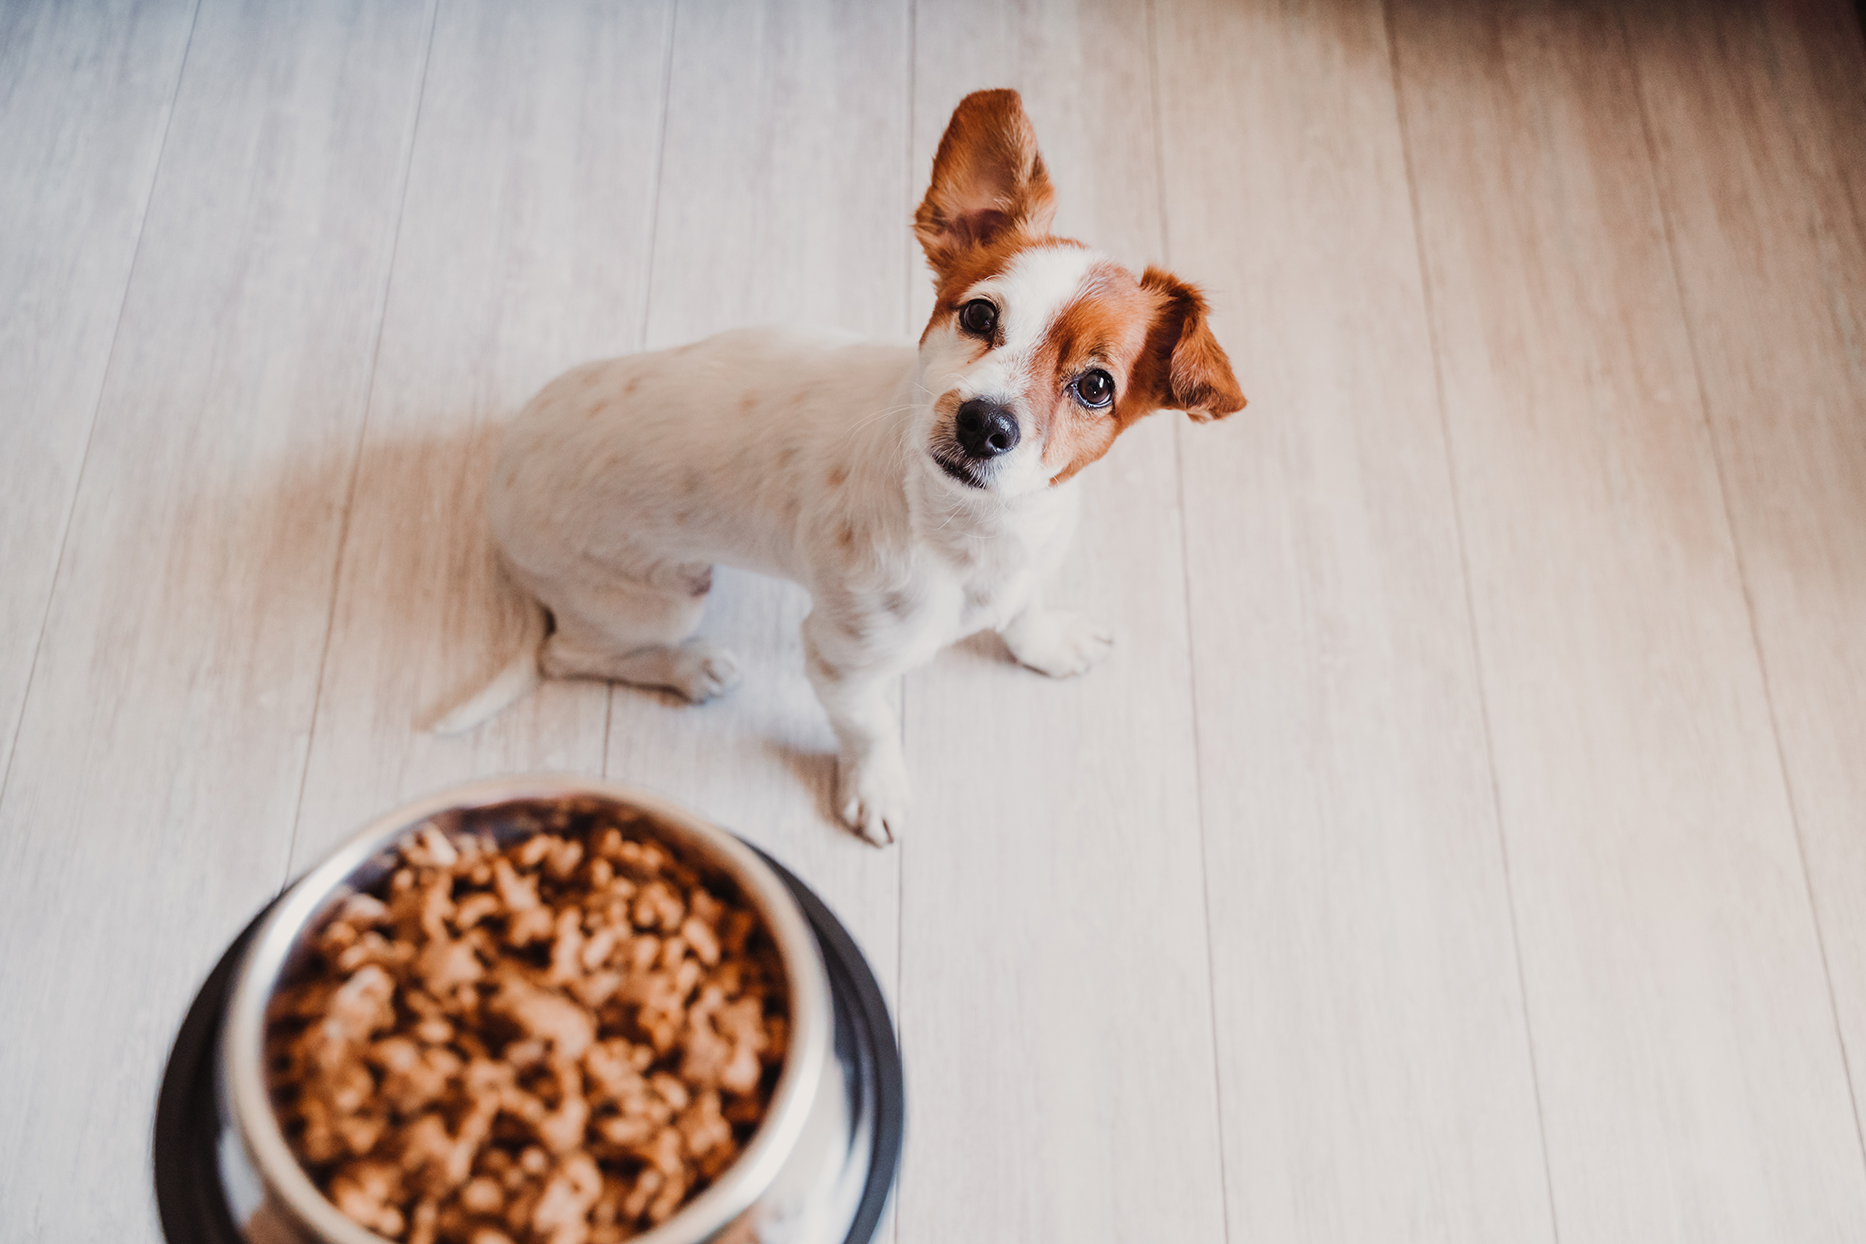 eager dog about to eat sustainable pet food